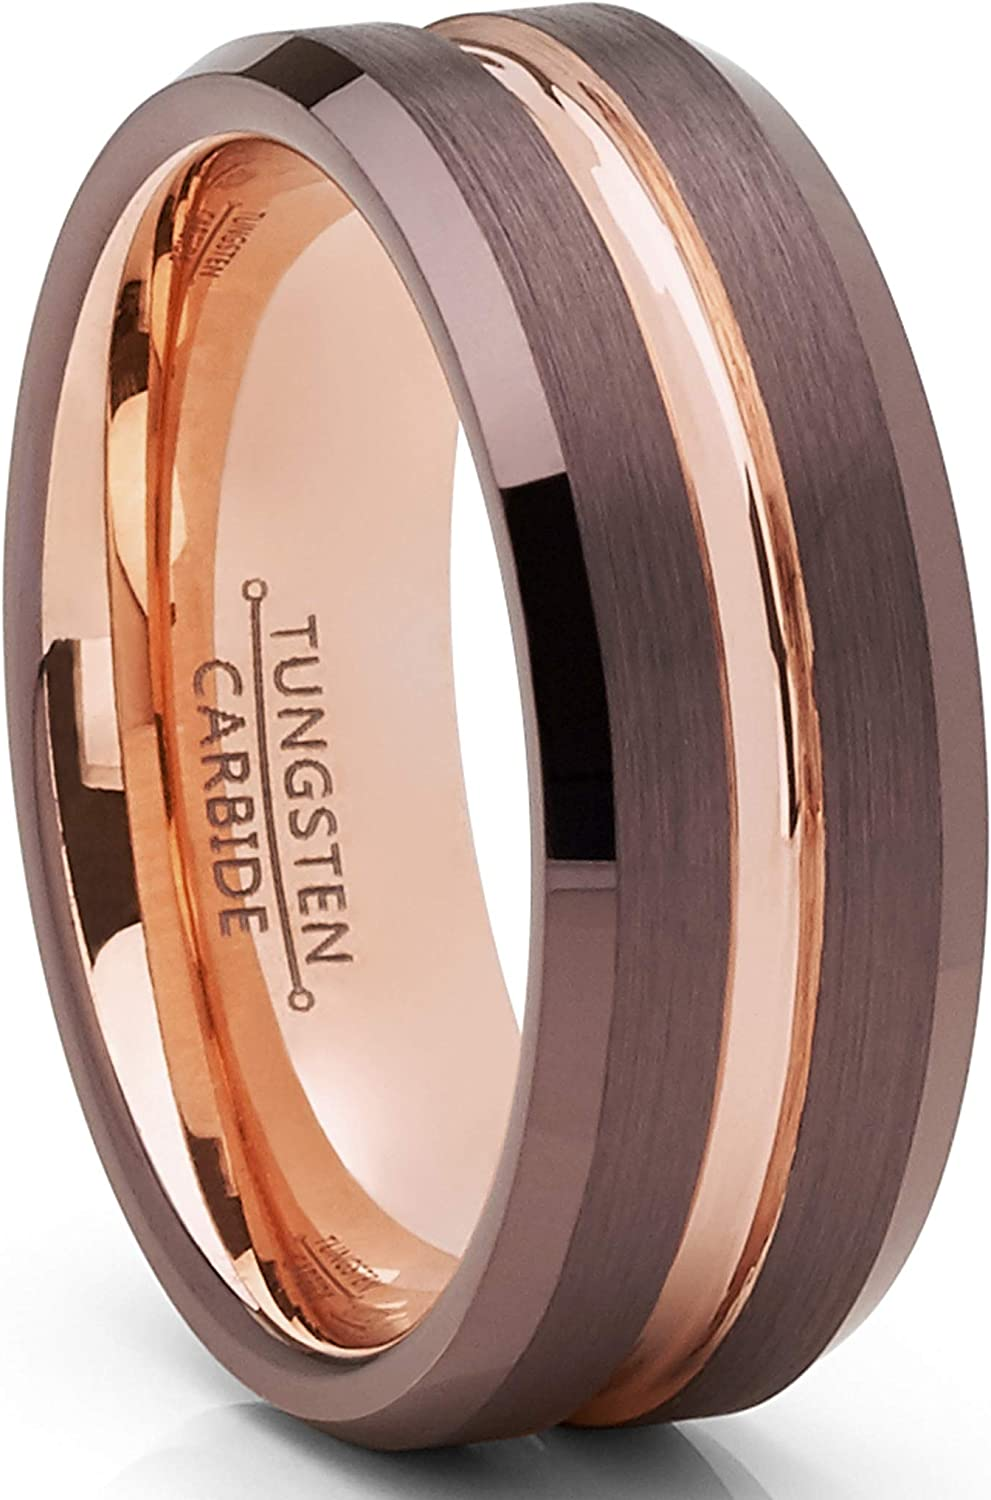 Metal Masters Co. Men's Chocolate Brown and Rose Goldtone Tungsten Carbide Wedding Band Ring 8mm